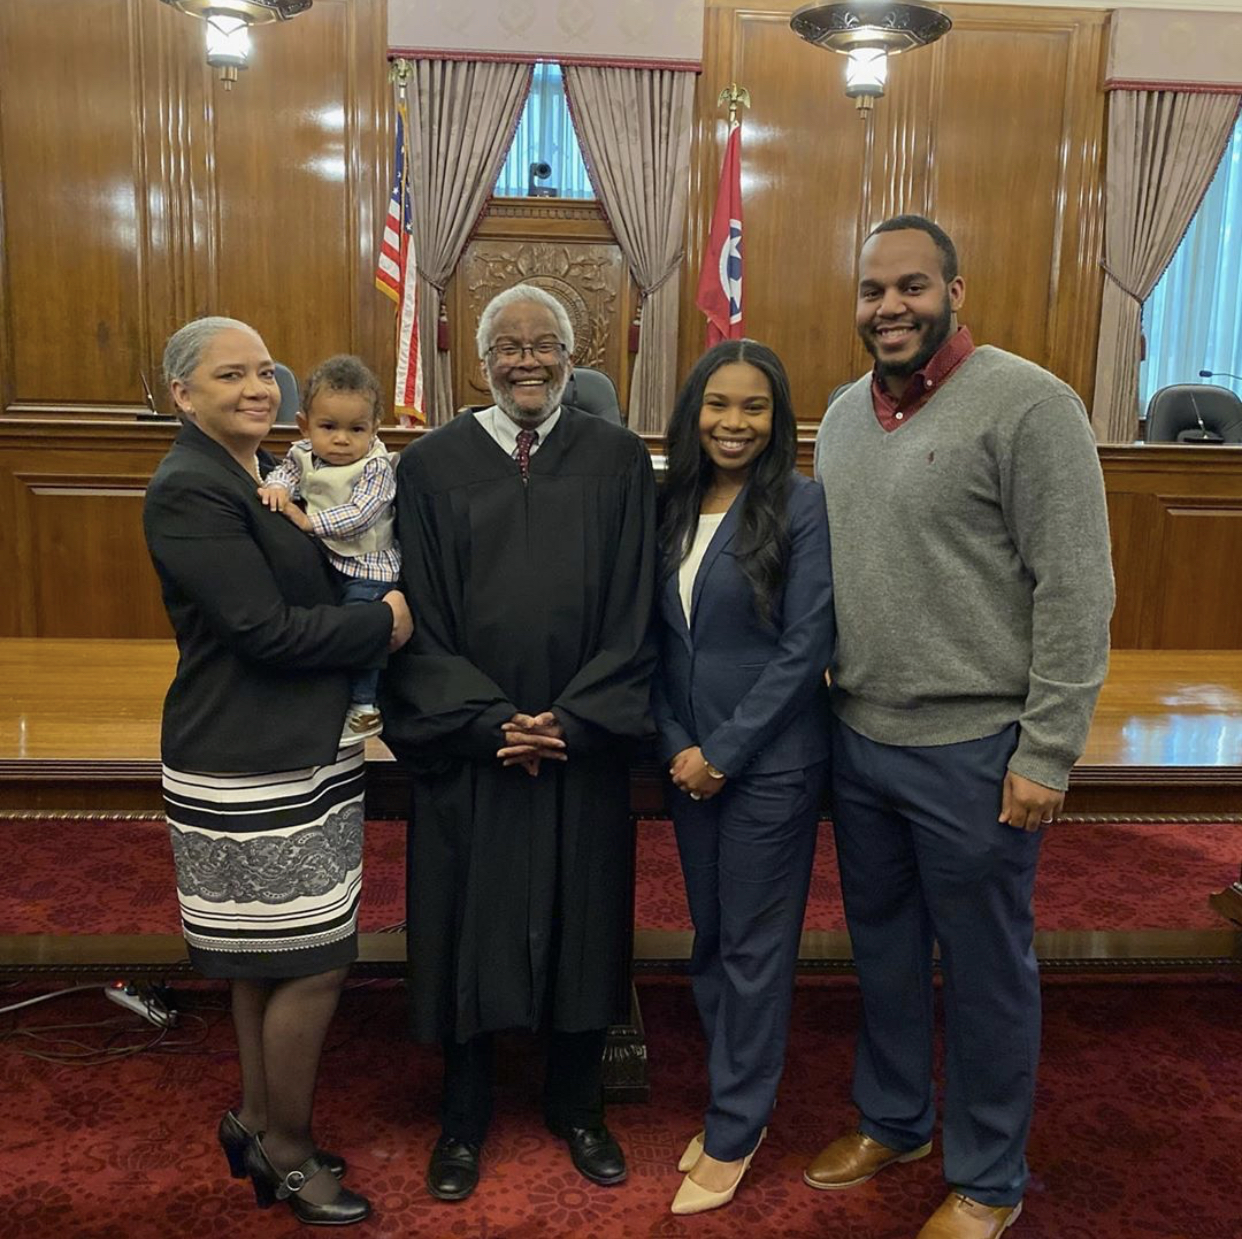 Lamar and family at attorney admission ceremony.